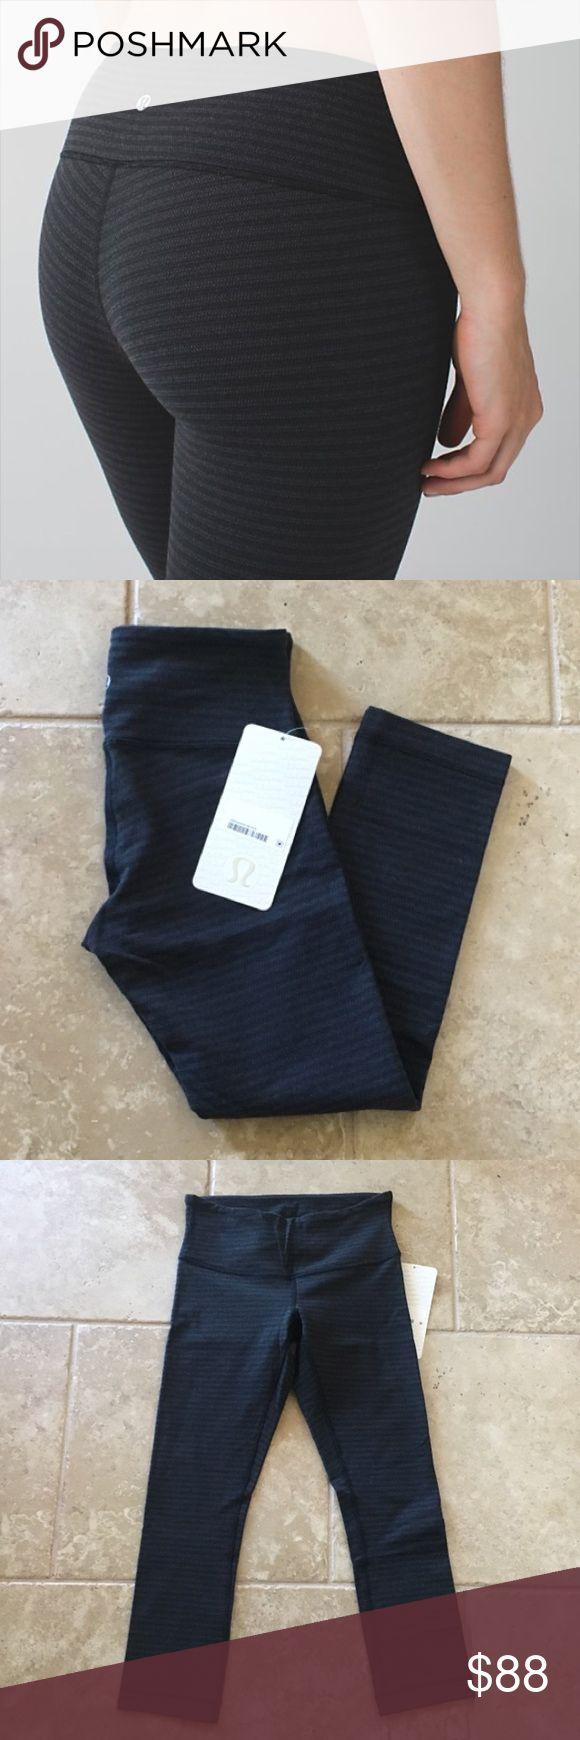 Lululemon Wunder Under Crop Lululemon wunder under crop in luon pique black dark slate. Size 4. NWT. 🚫NO TRADES🚫 I only sell through Poshmark. lululemon athletica Pants Ankle & Cropped